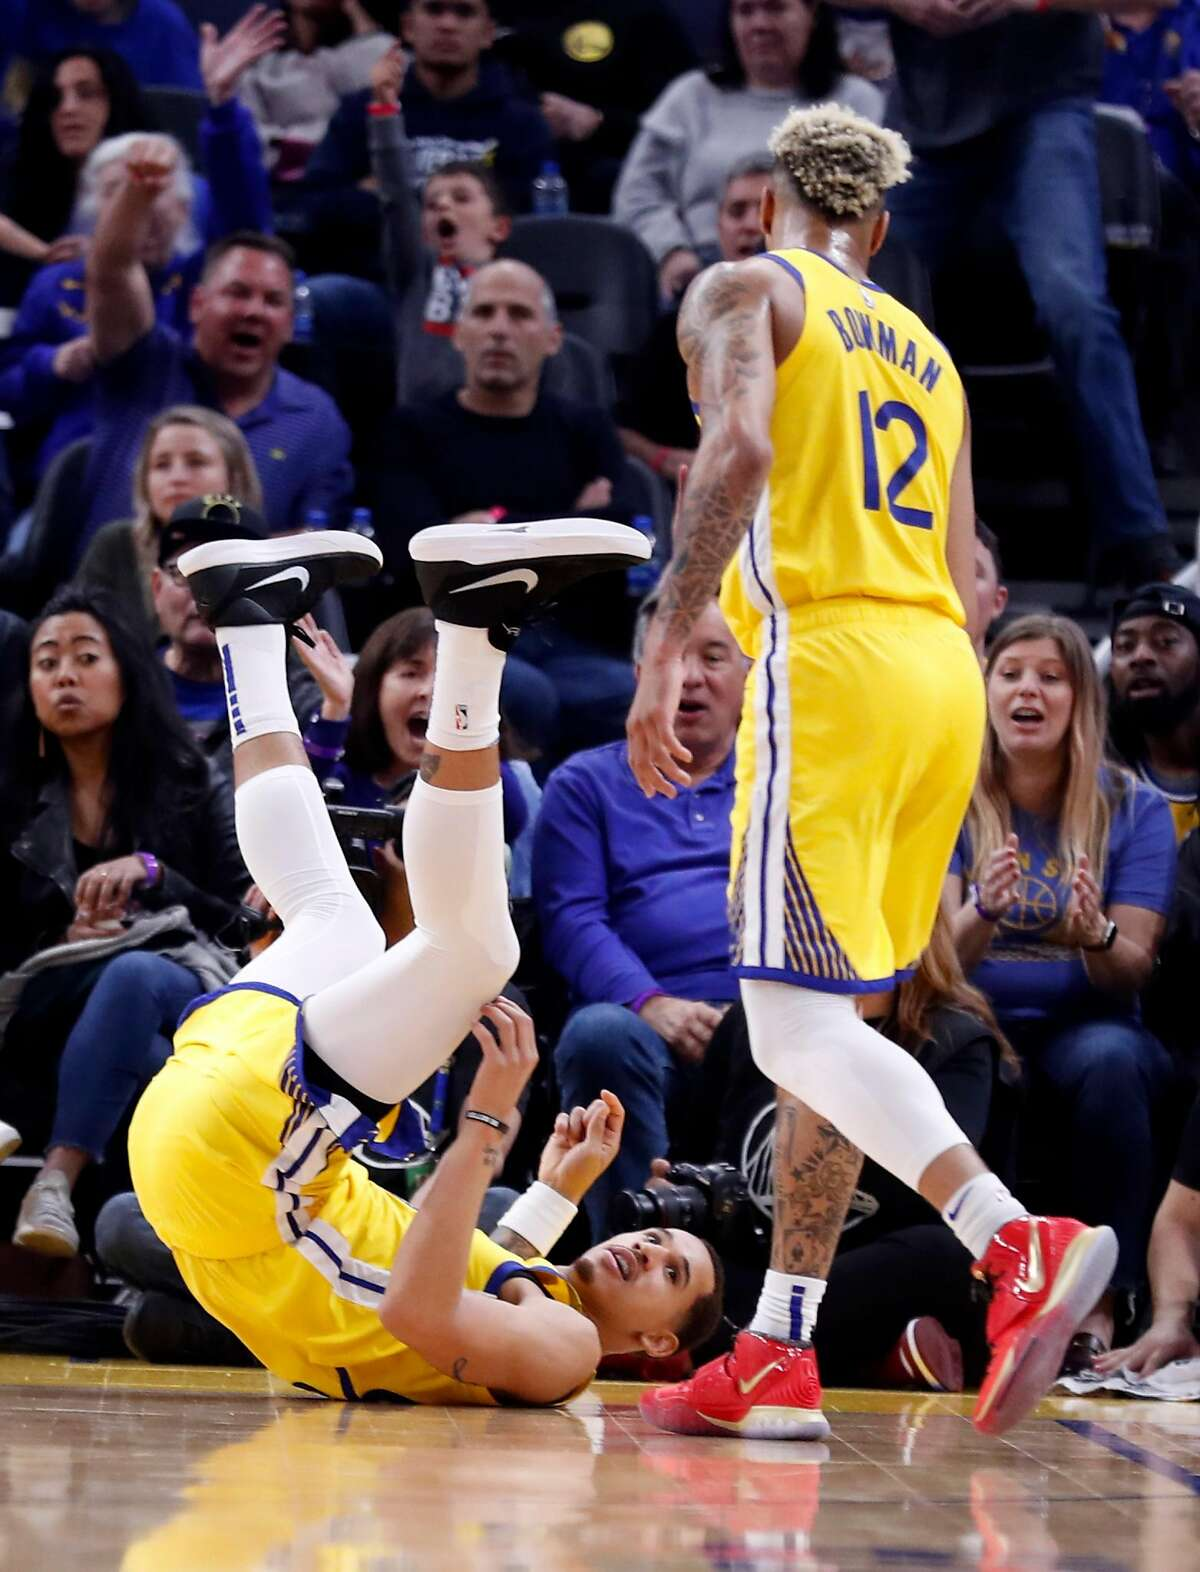 Golden State Warriors' Juan Toscano-Anderson looks up at Ky Bowman after being fouled while scoring during 4th quarter of New Orleans Pelicans' 115-101 win in NBA game at Chase Center in San Francisco, Calif., on Sunday, February 23, 2020.